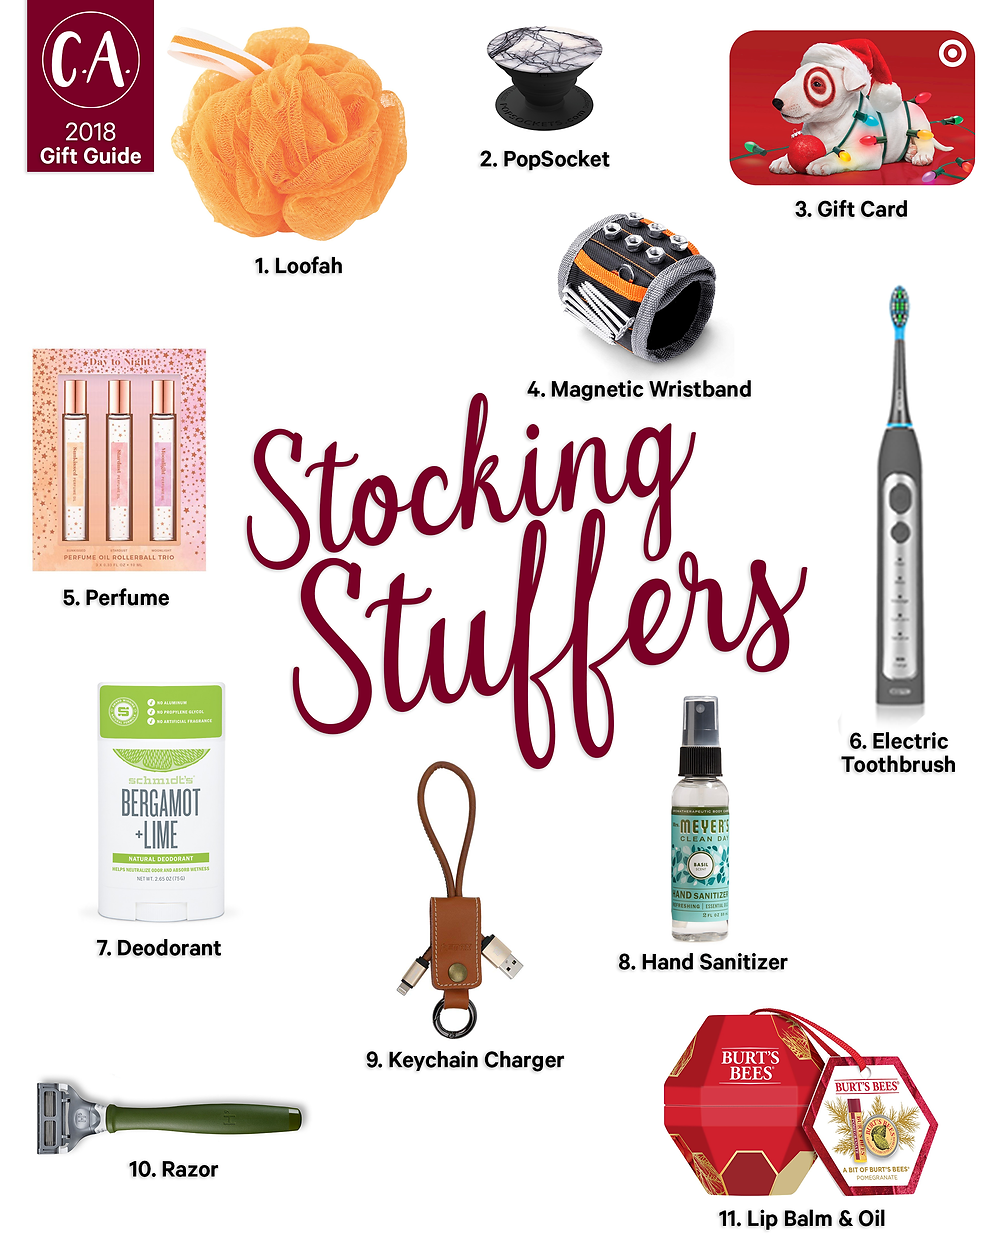 2018 Holiday Gift Guide for stocking stuffers - Cassandra Ann - 2018 Popular Blogger